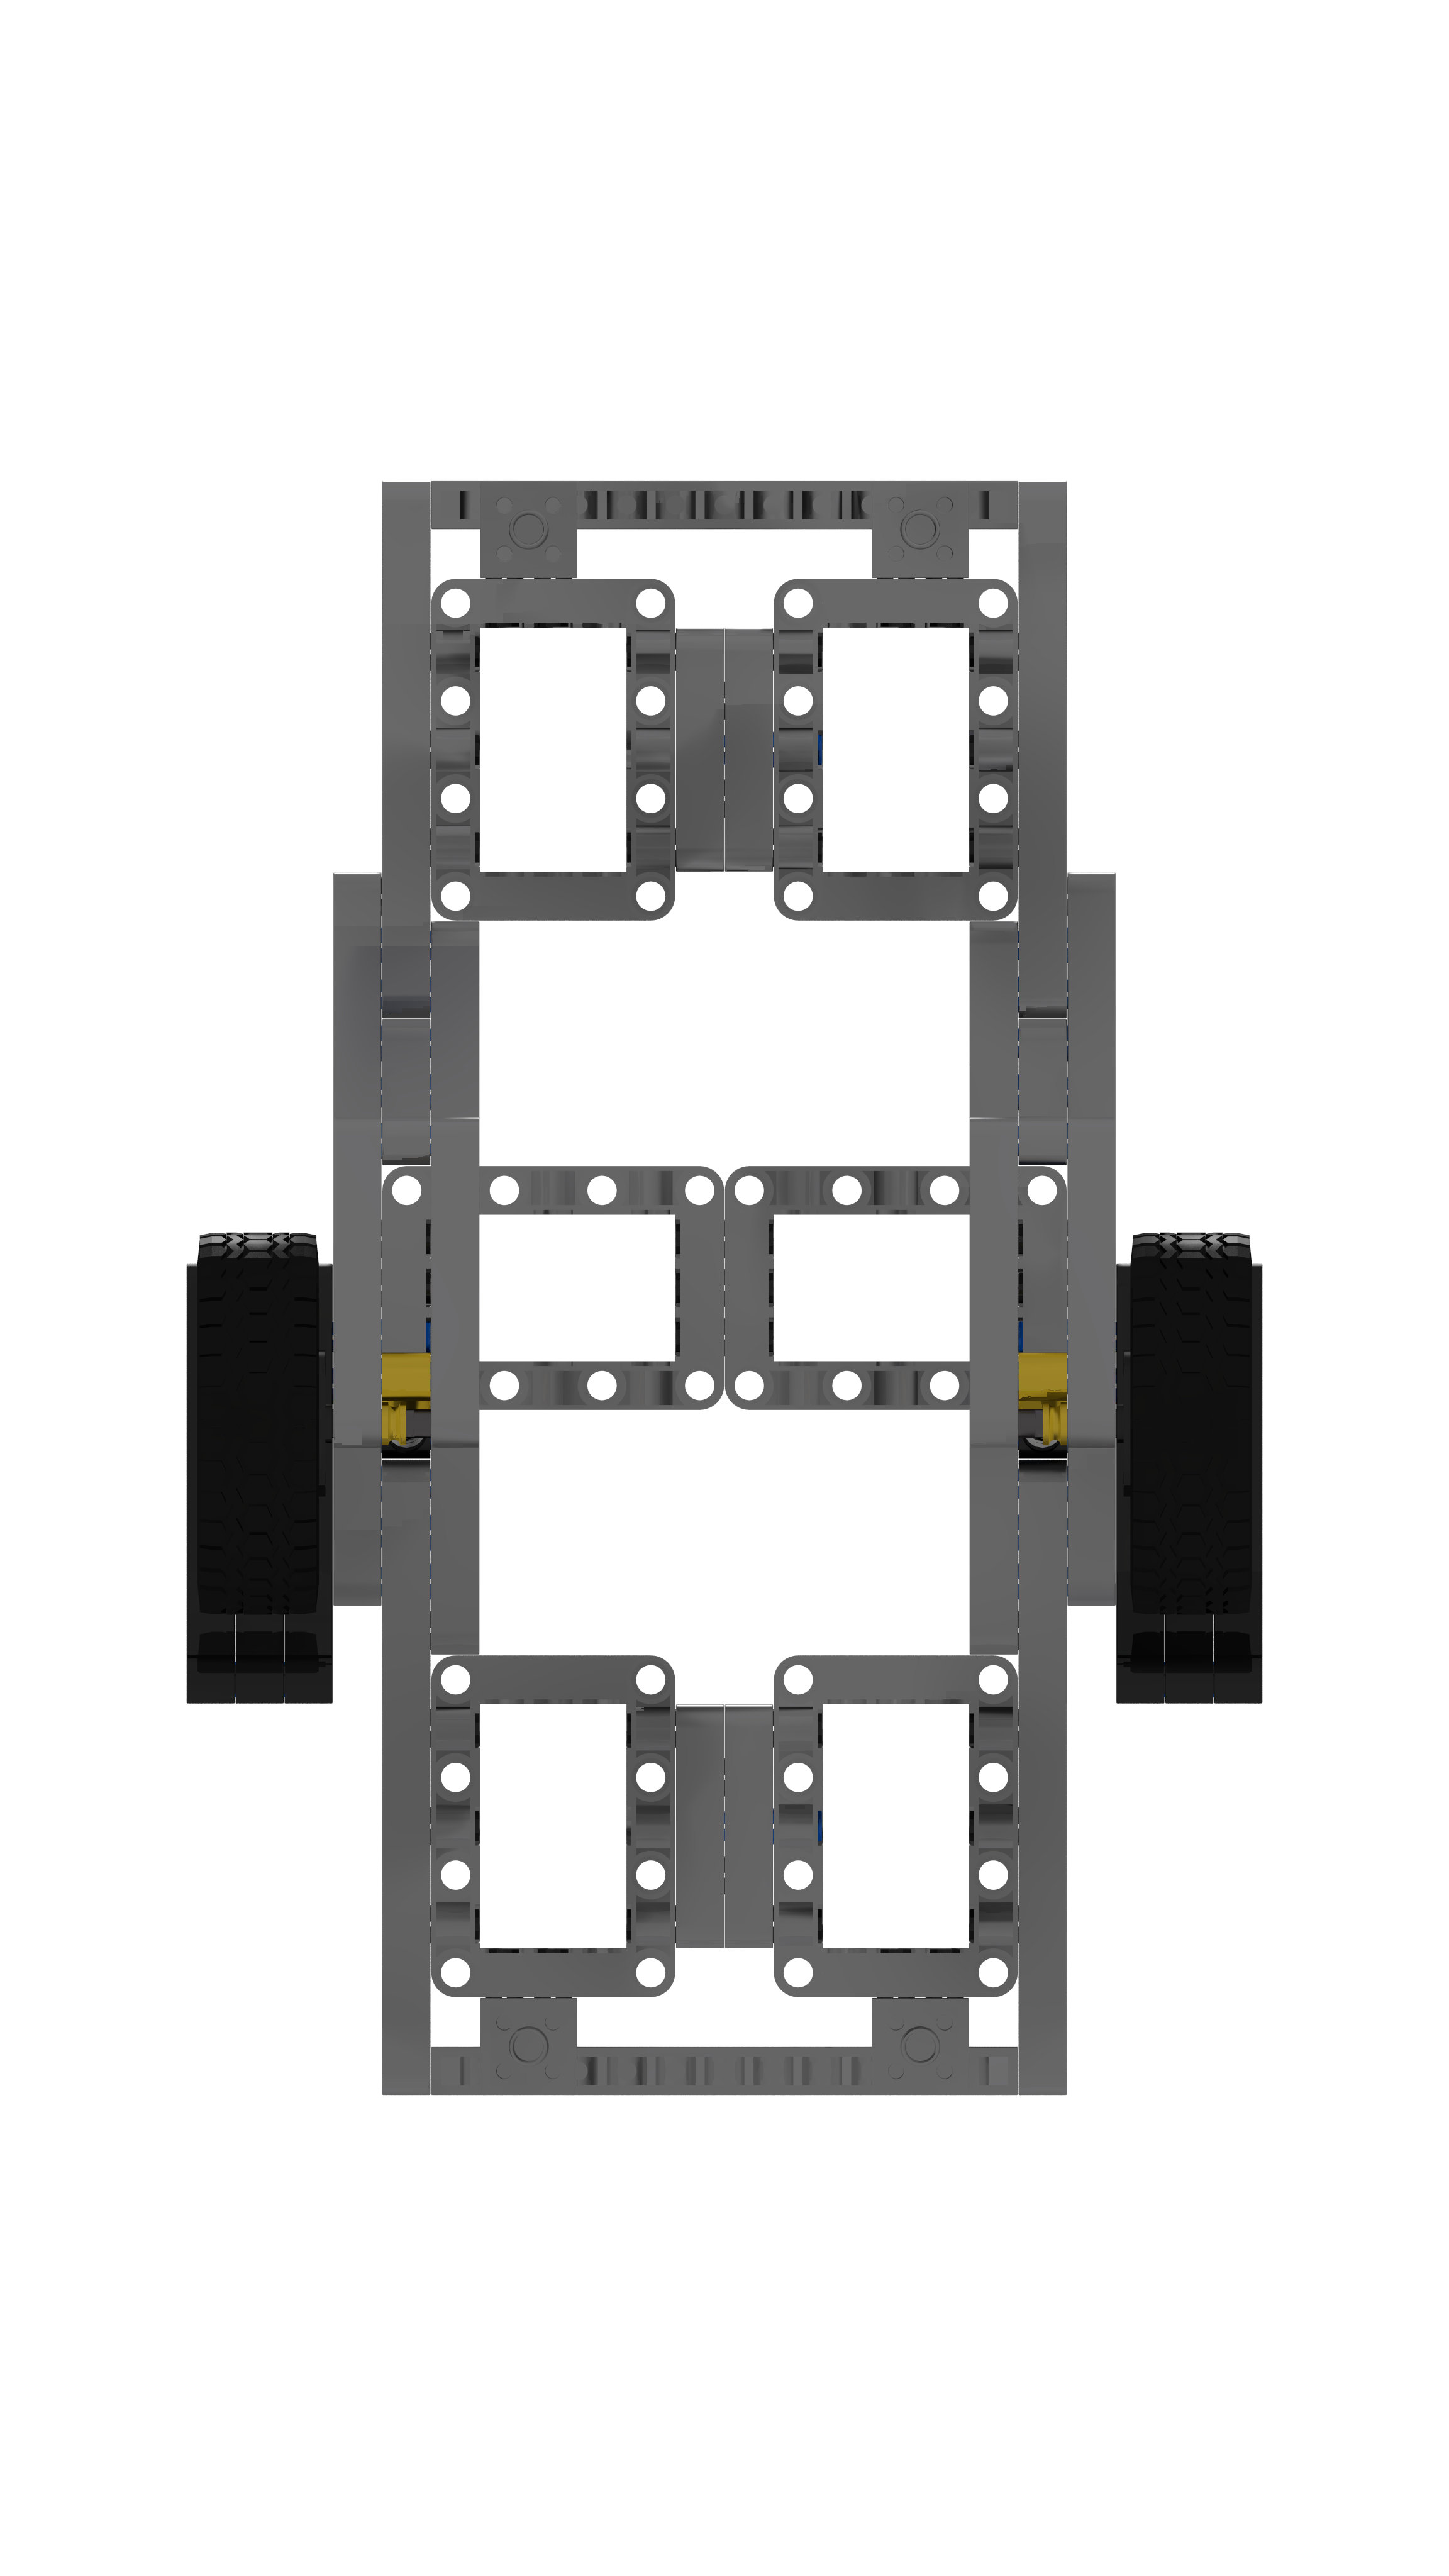 trailer_chassis_6.jpg